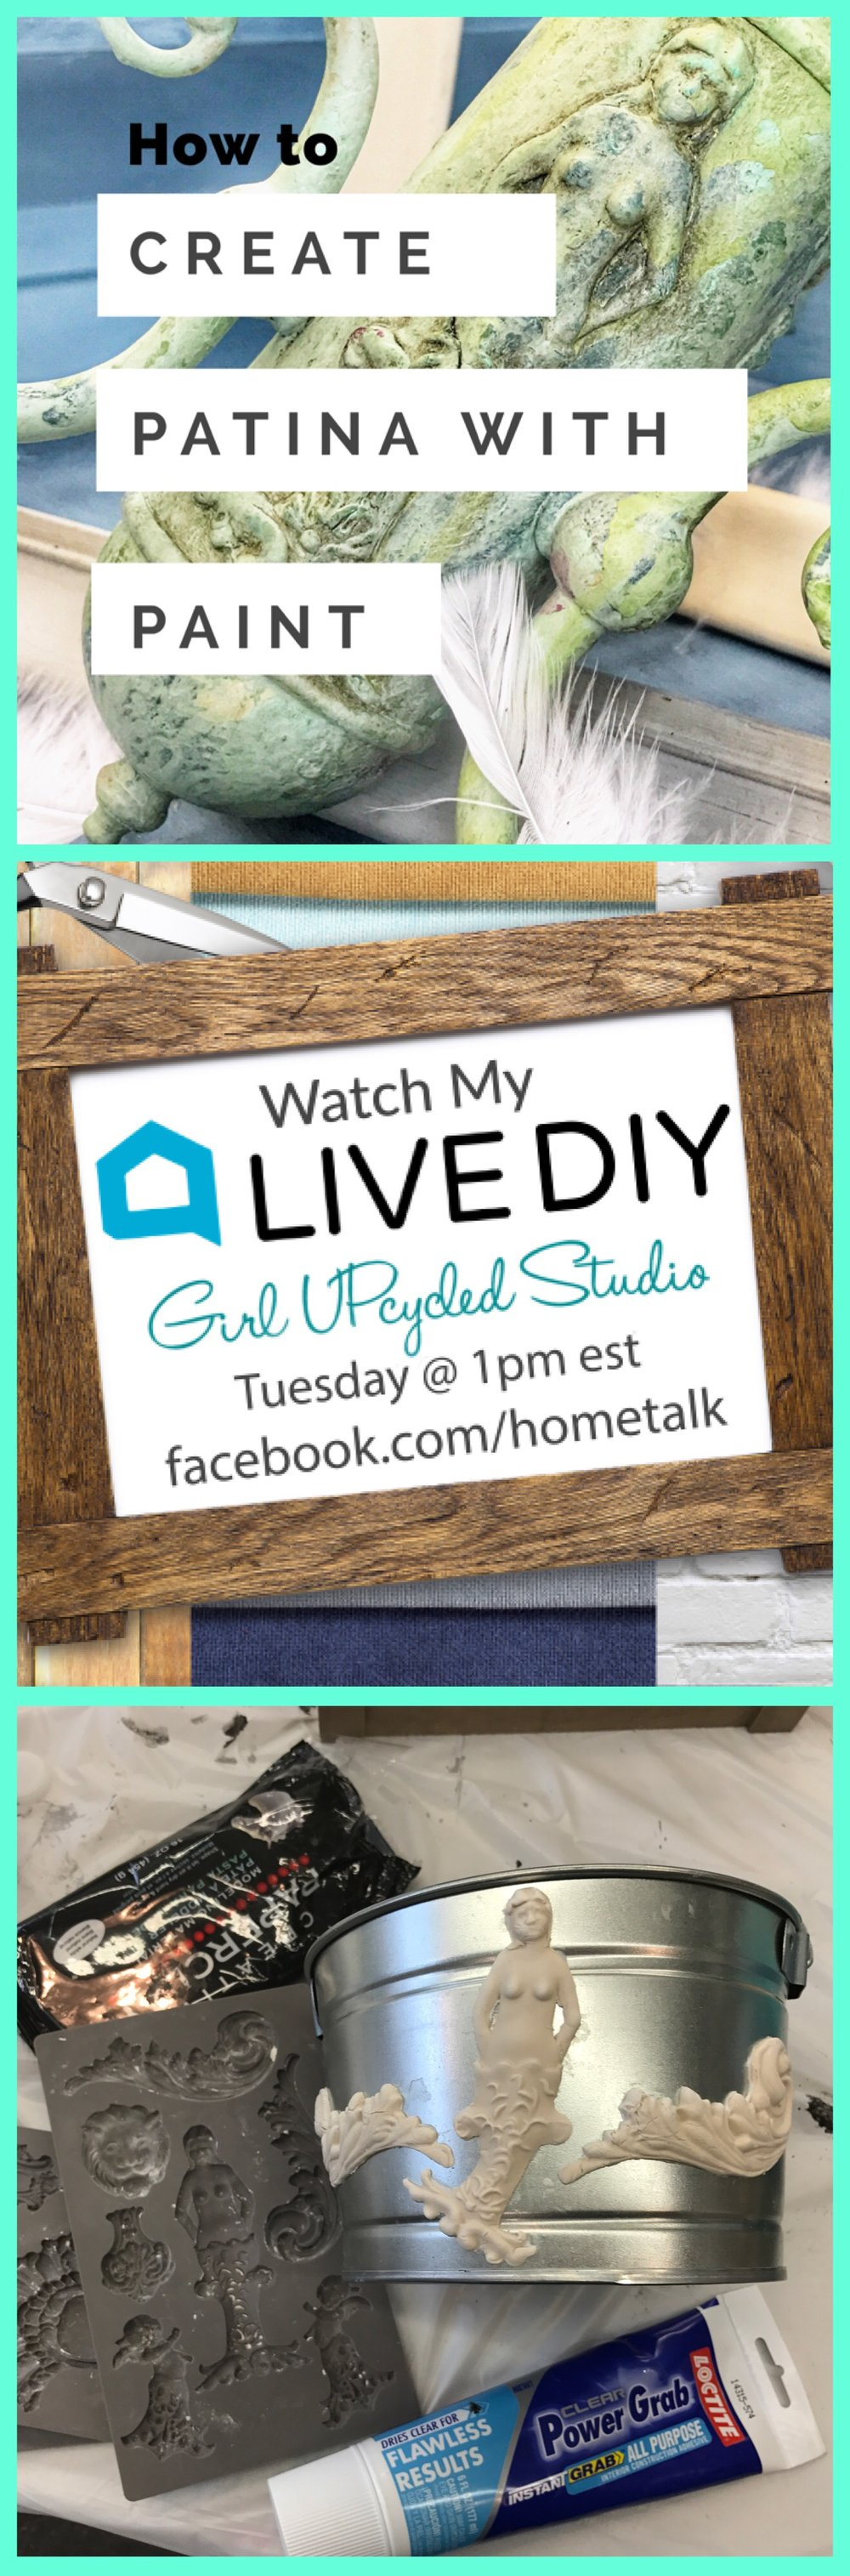 Watch march 7 at 1:00 on Hometalk FB live!!!  giveaway too!!!